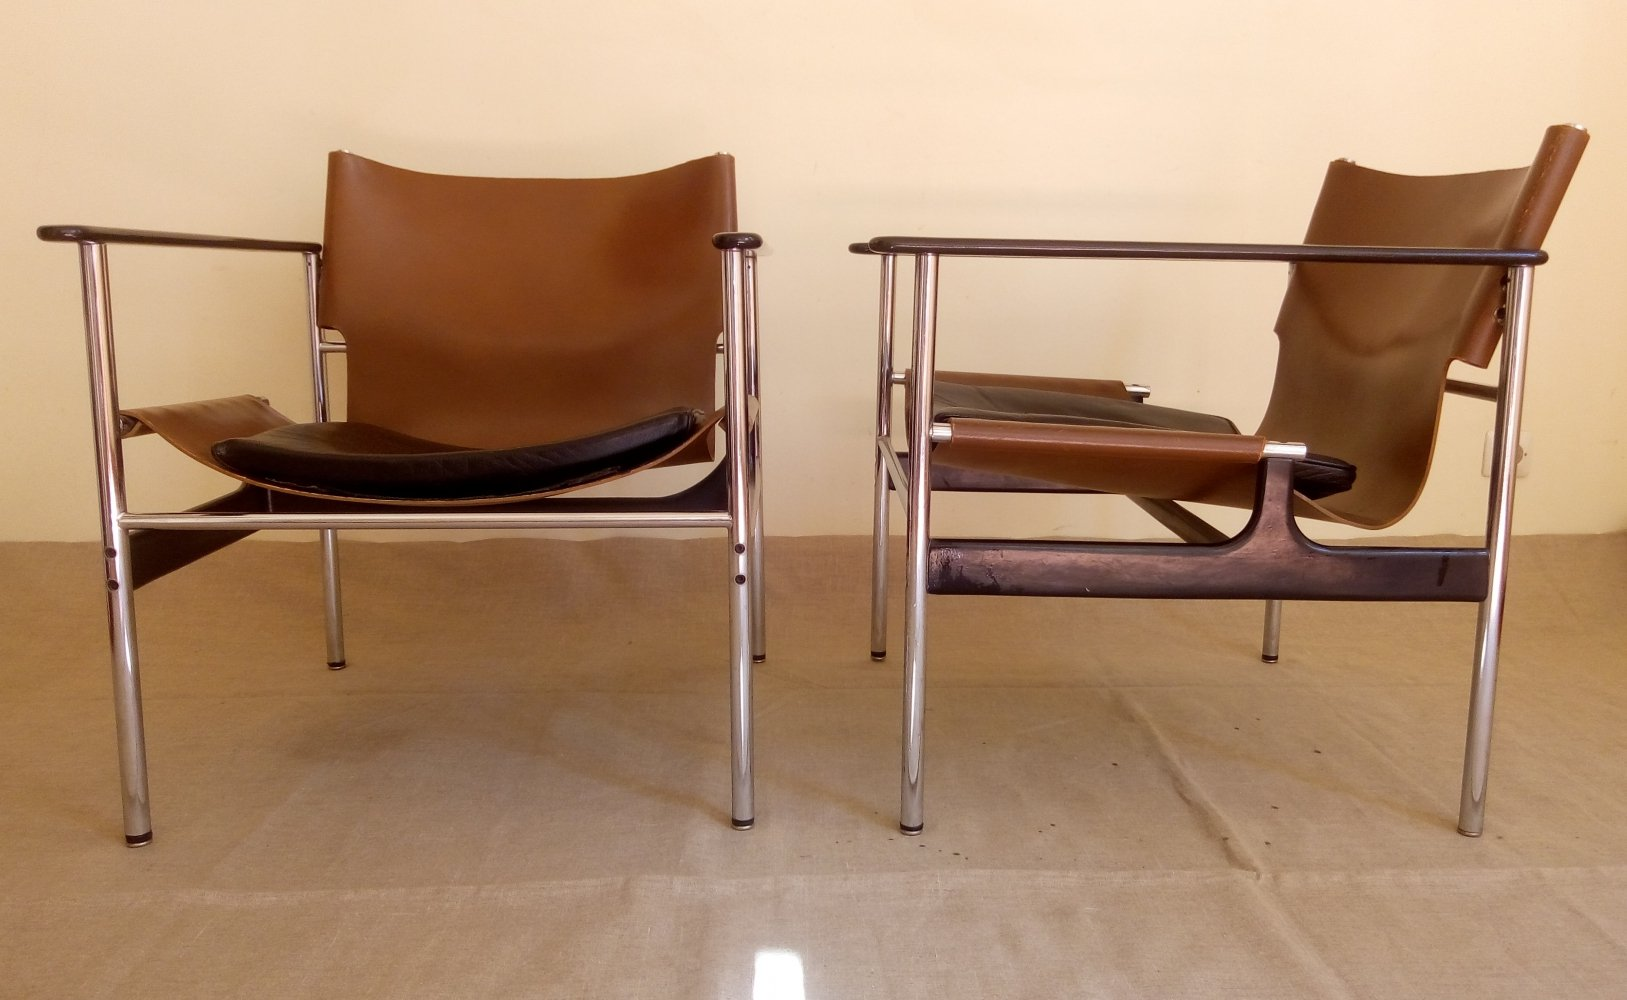 657 sling chairs by Charles Pollock for Knoll International